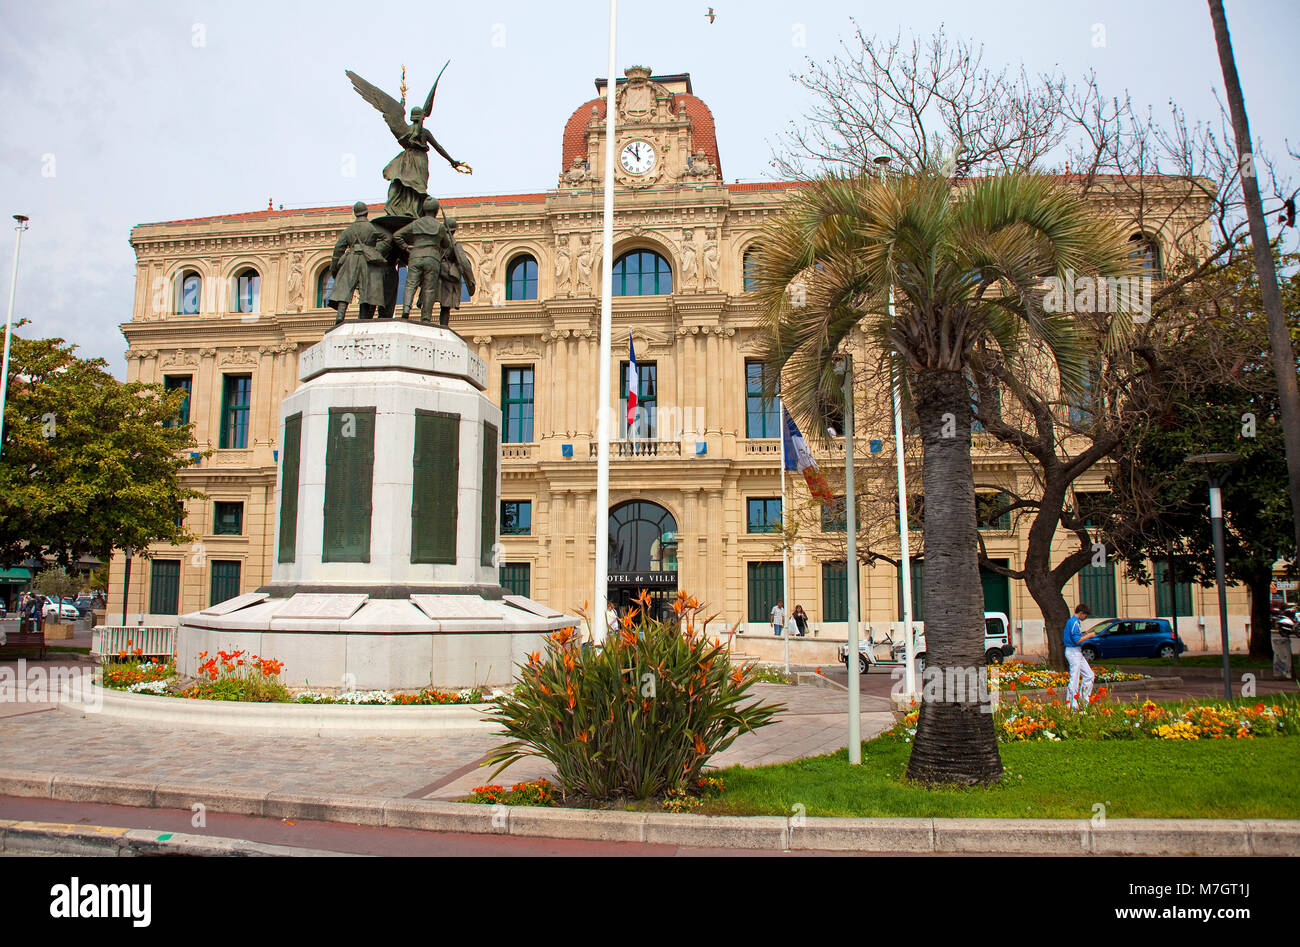 War monument in front of Hotel de Ville (town hall) at old town Le Suquet, Cannes, french riviera, South France, - Stock Image